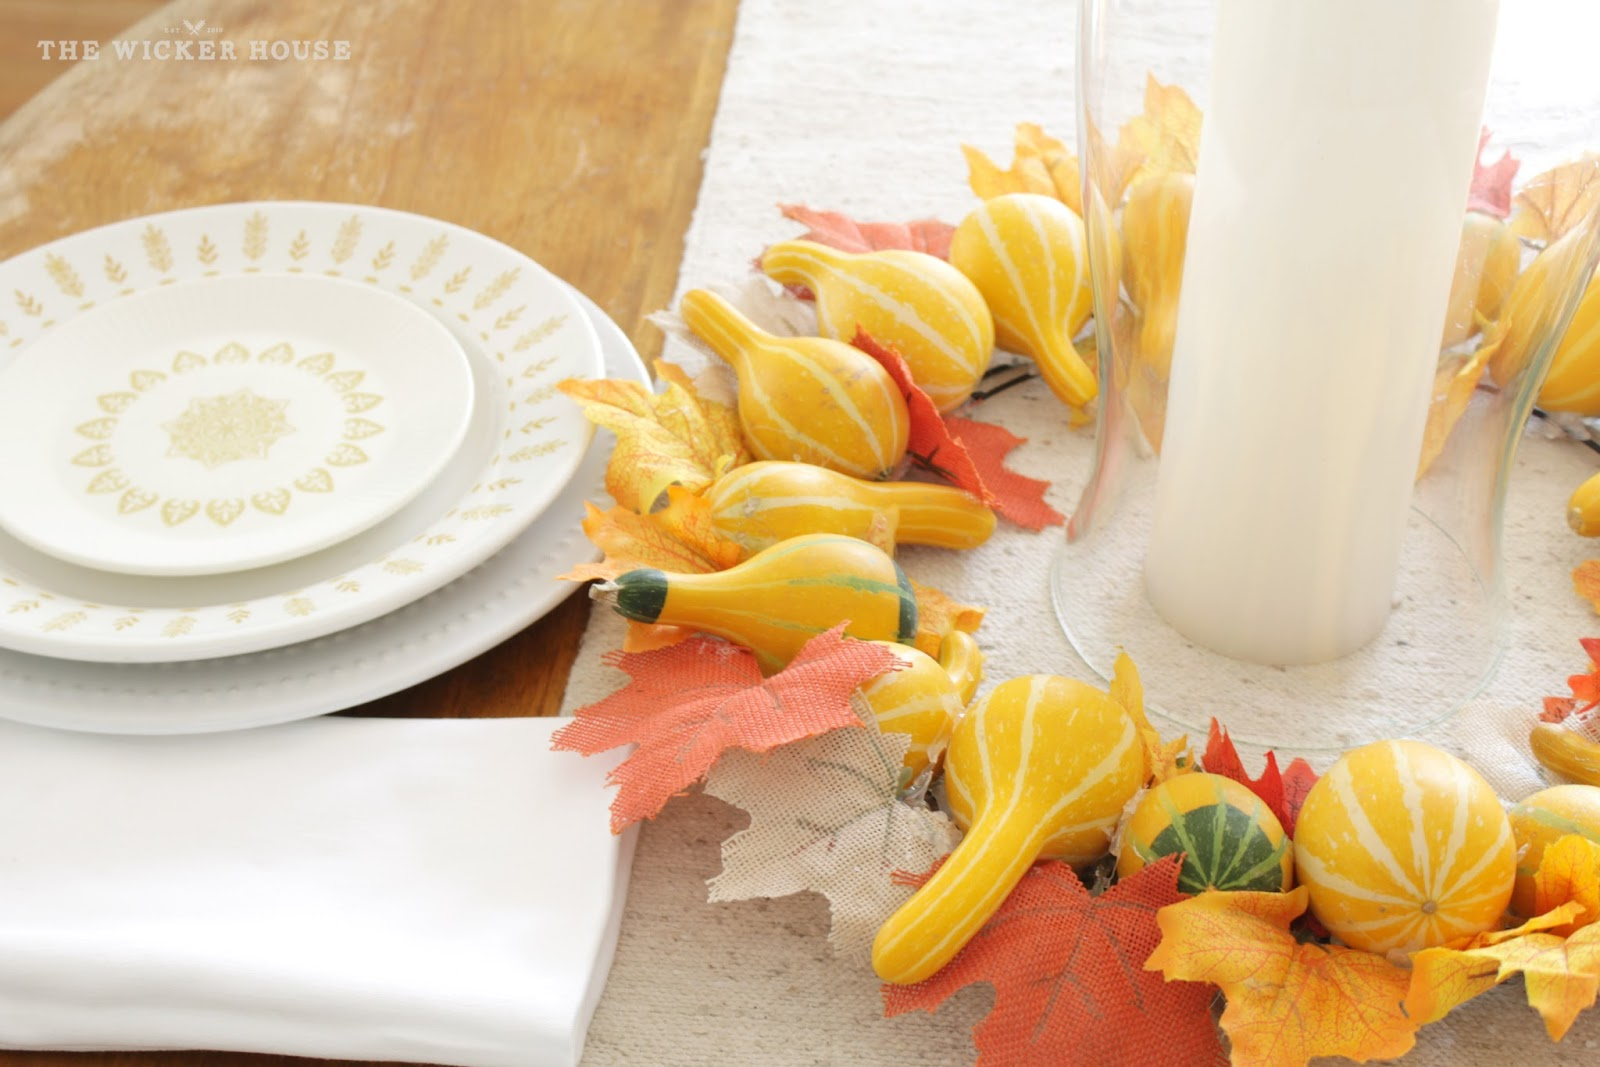 How to make a gourd wreath or centerpiece the wicker house